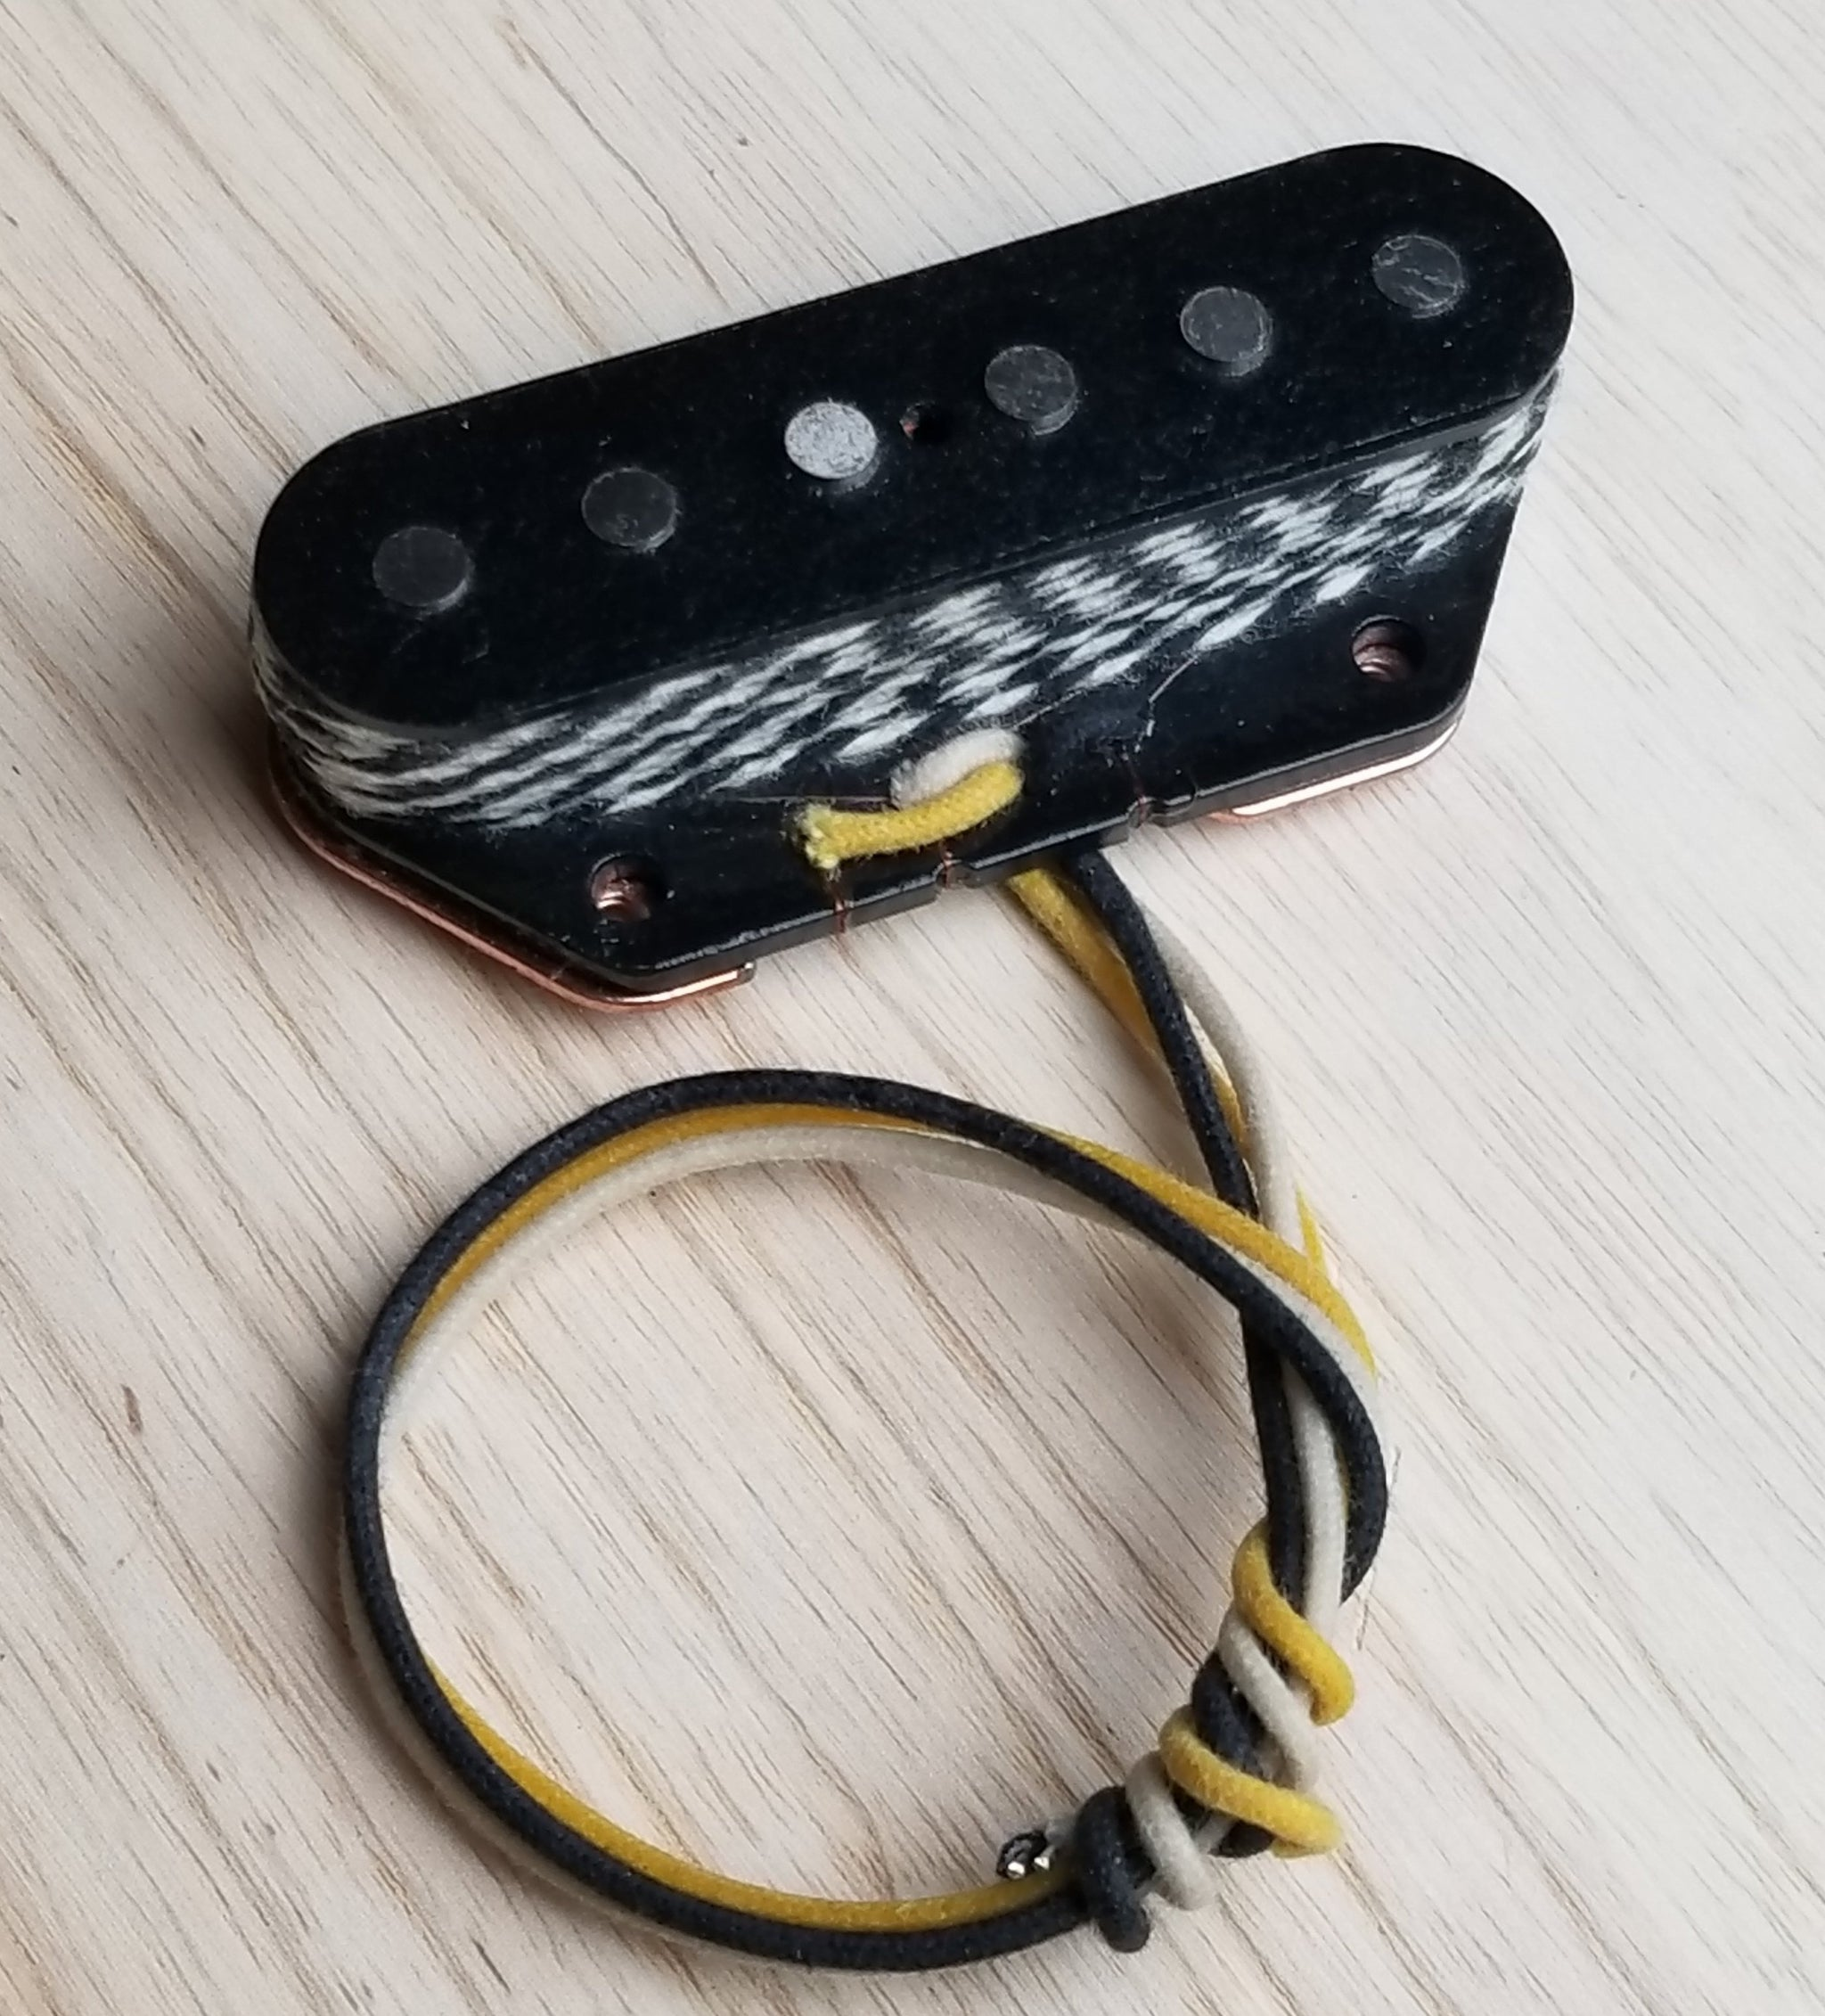 Asher Vintage Style Compensated Tele Bridge, Cold Rolled